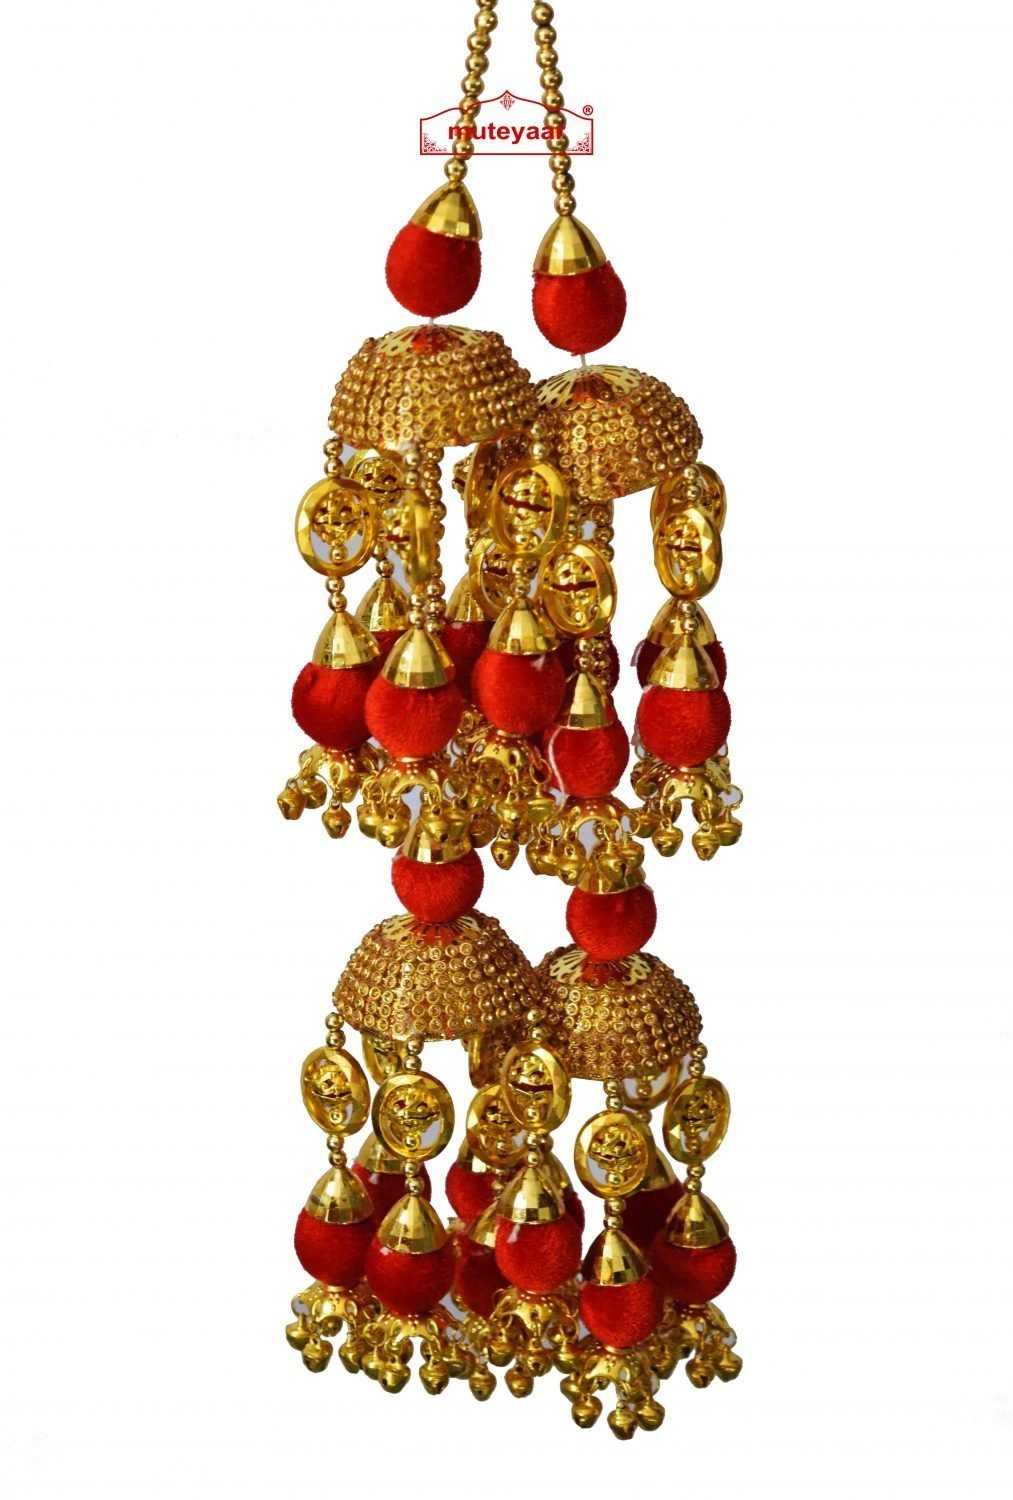 ZIRCON TAPE RED BALLS WEDDING KALEERA FOR PUNJABI BRIDE J0912 1